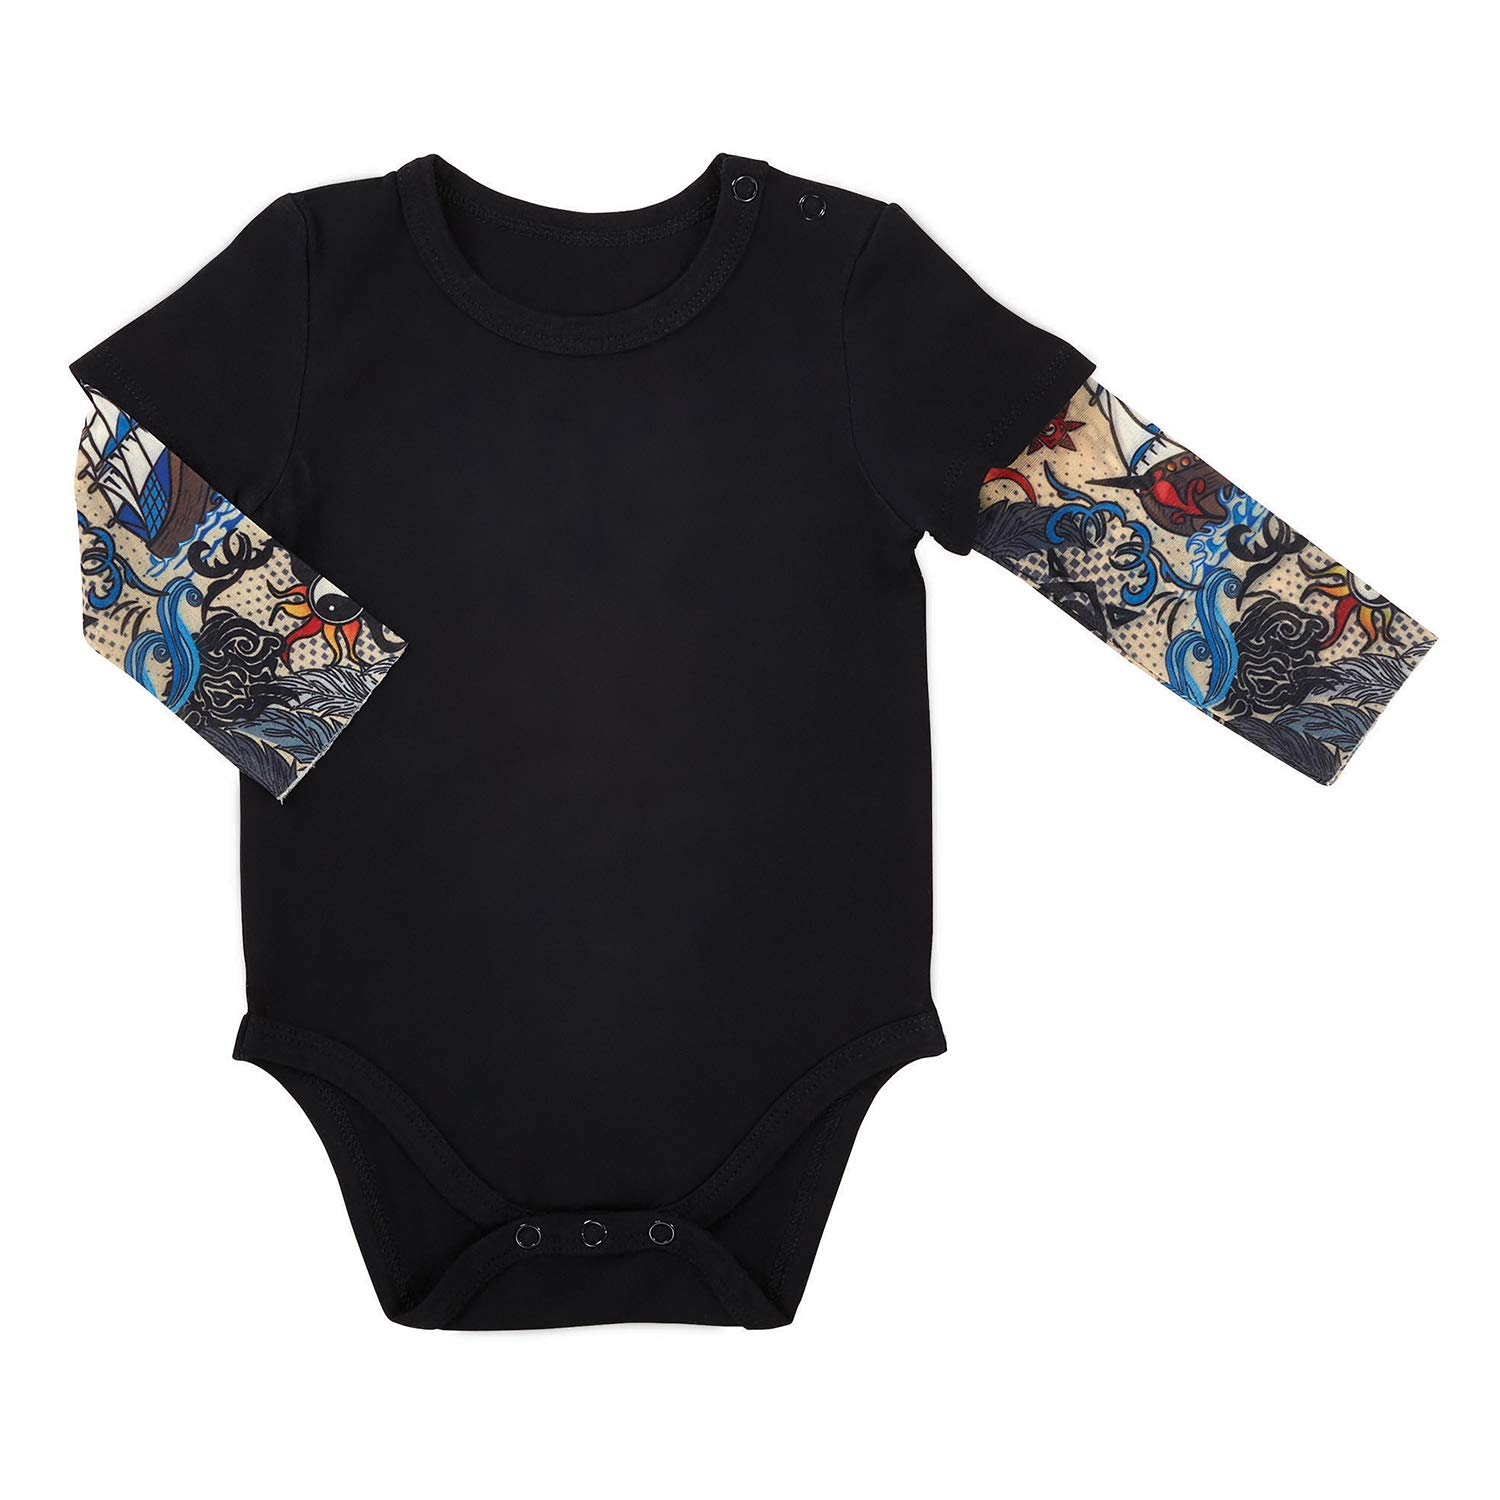 Stephan Baby Snapshirt-Style Diaper Cover with Tattoo Sleeves, Black, 6-12 Months by Stephan Baby